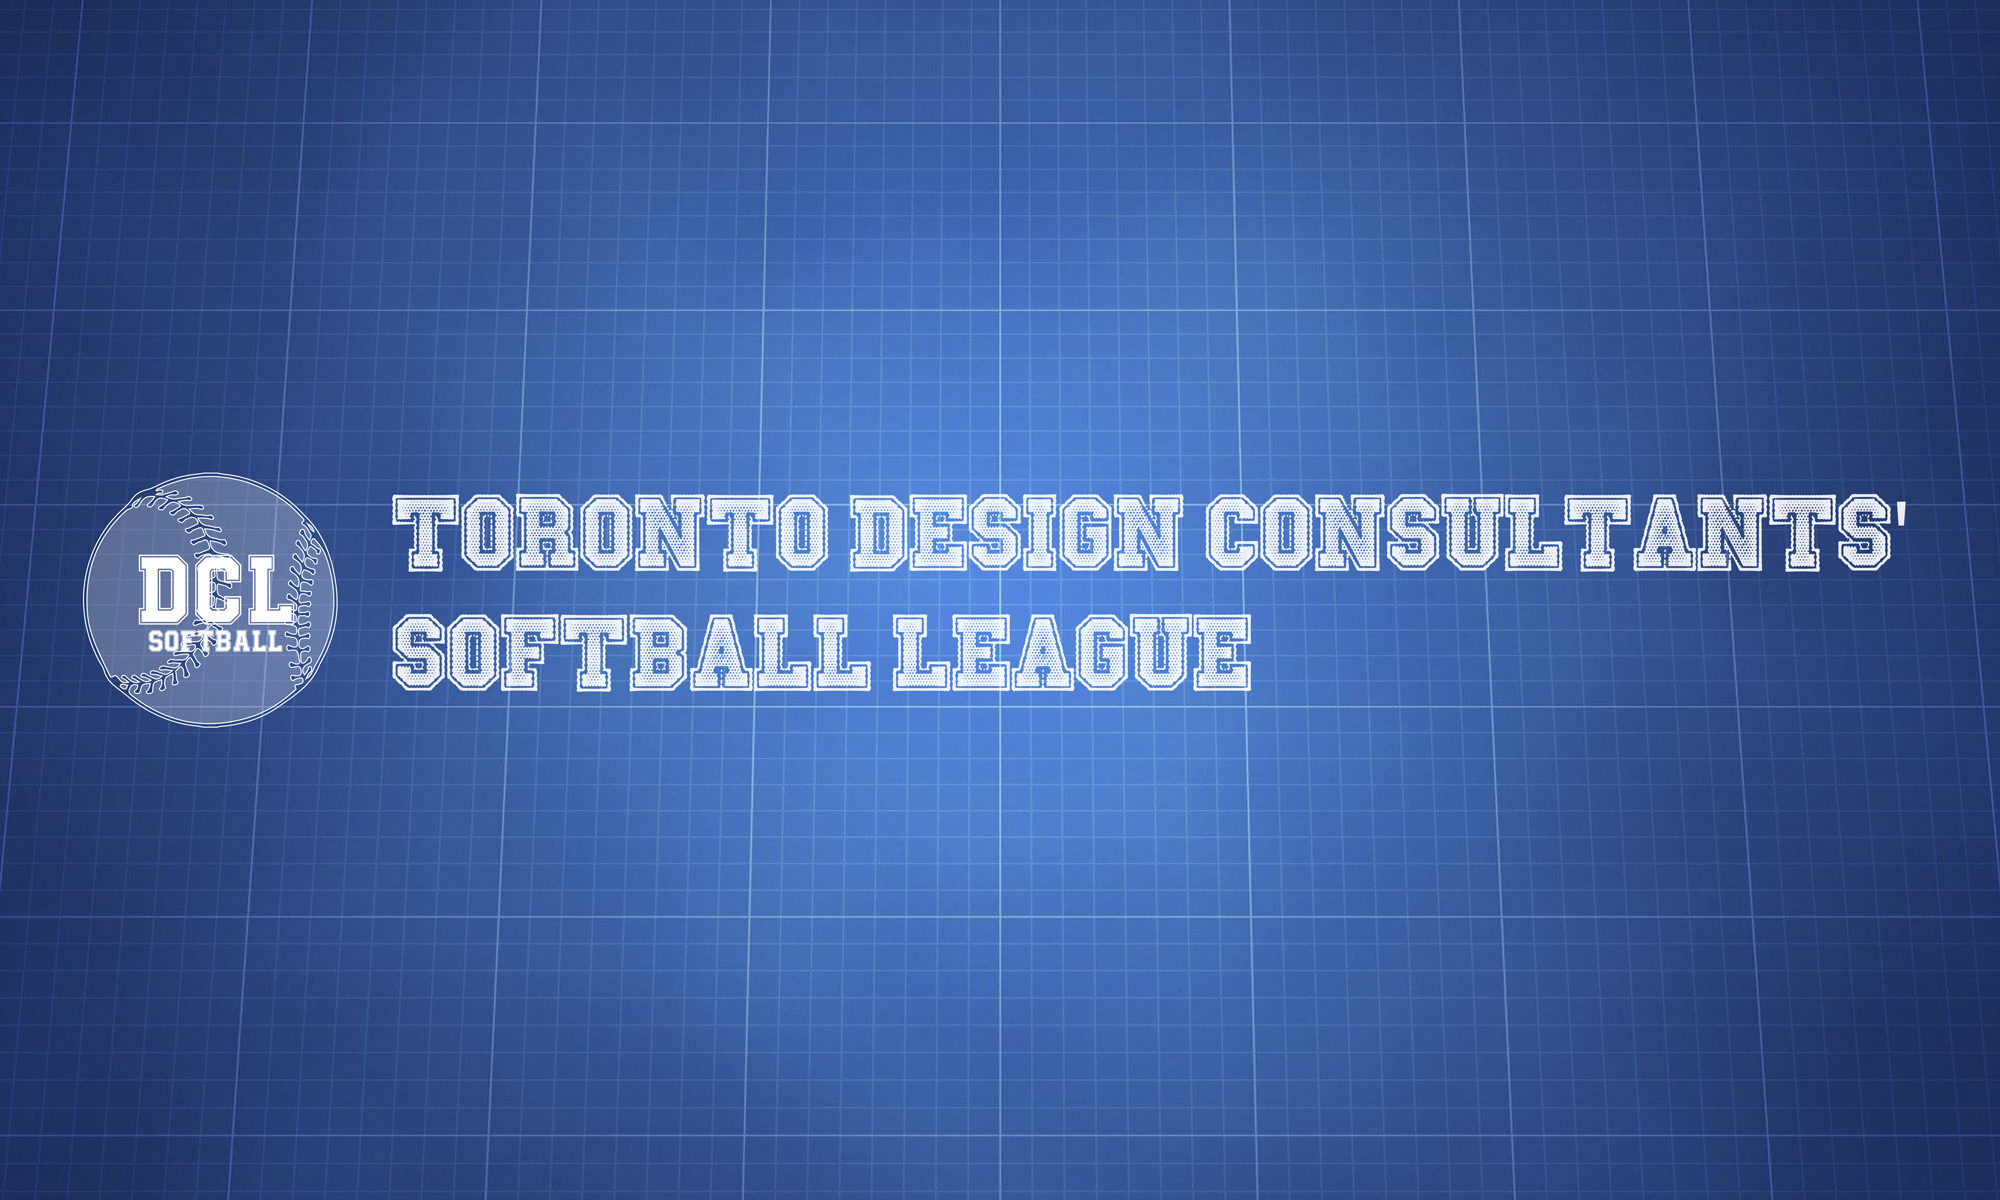 TORONTO DESIGN CONSULTANTS' SOFTBALL LEAGUE